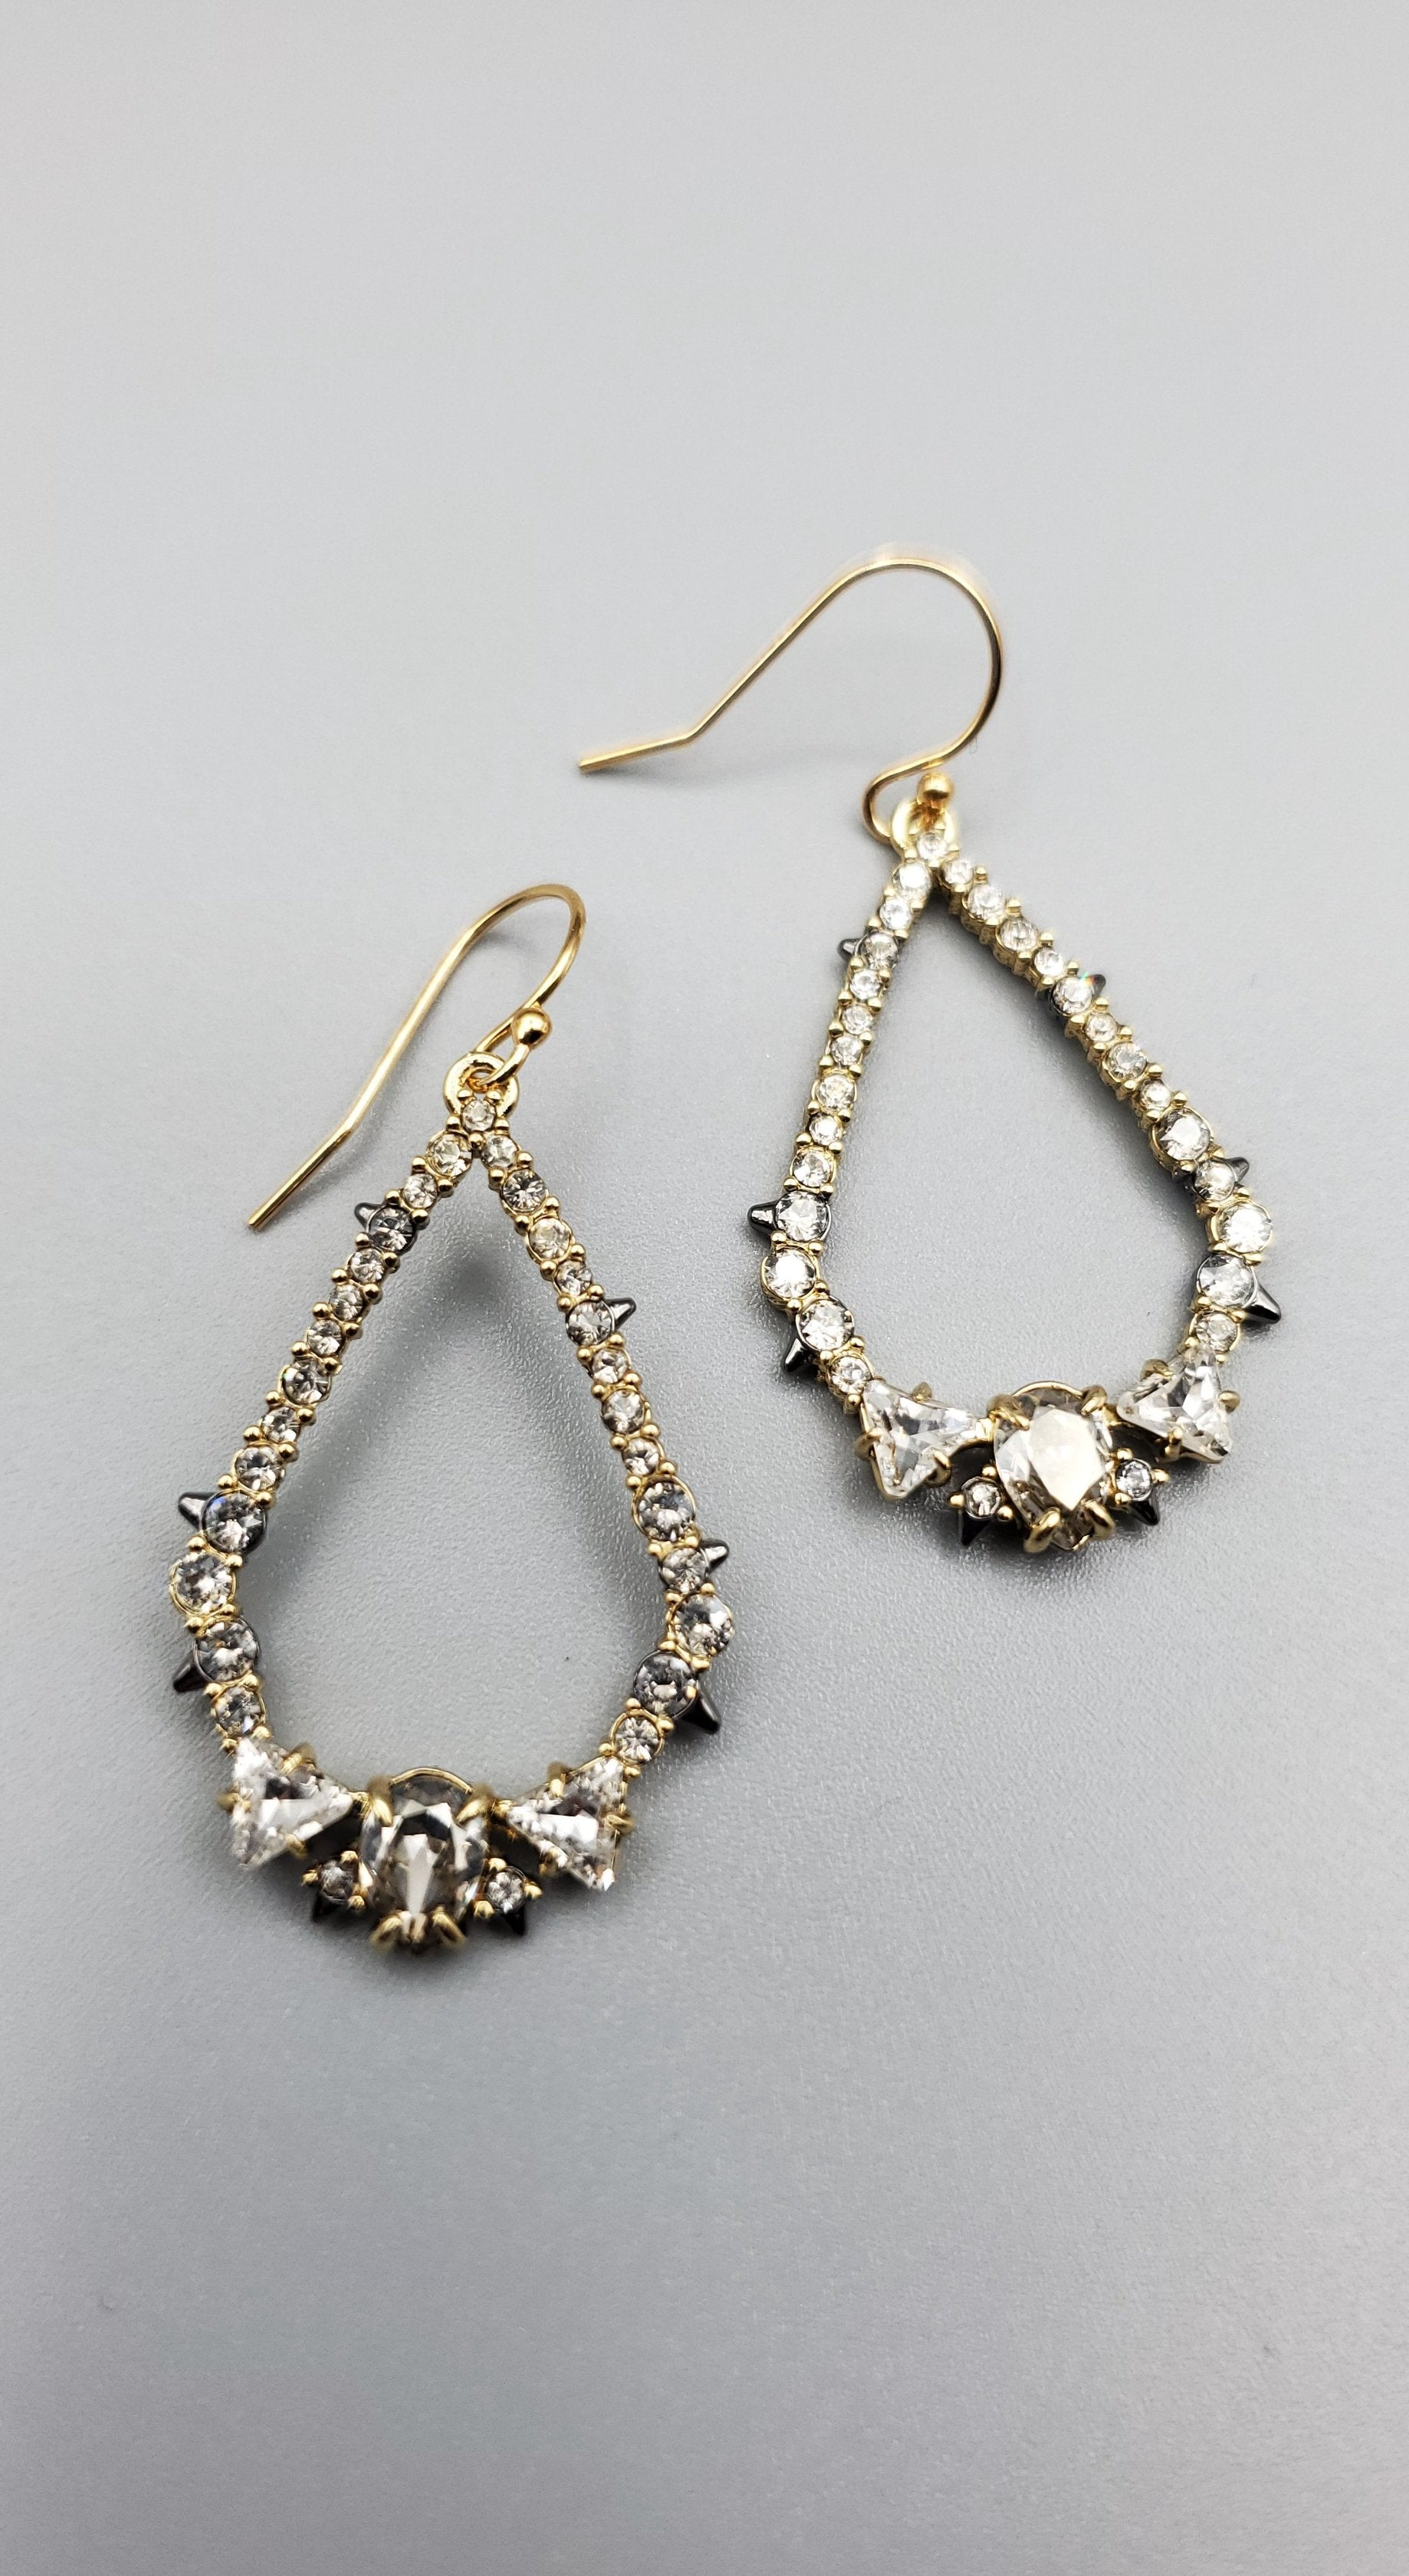 Alexis Bittar earrings AB73E072